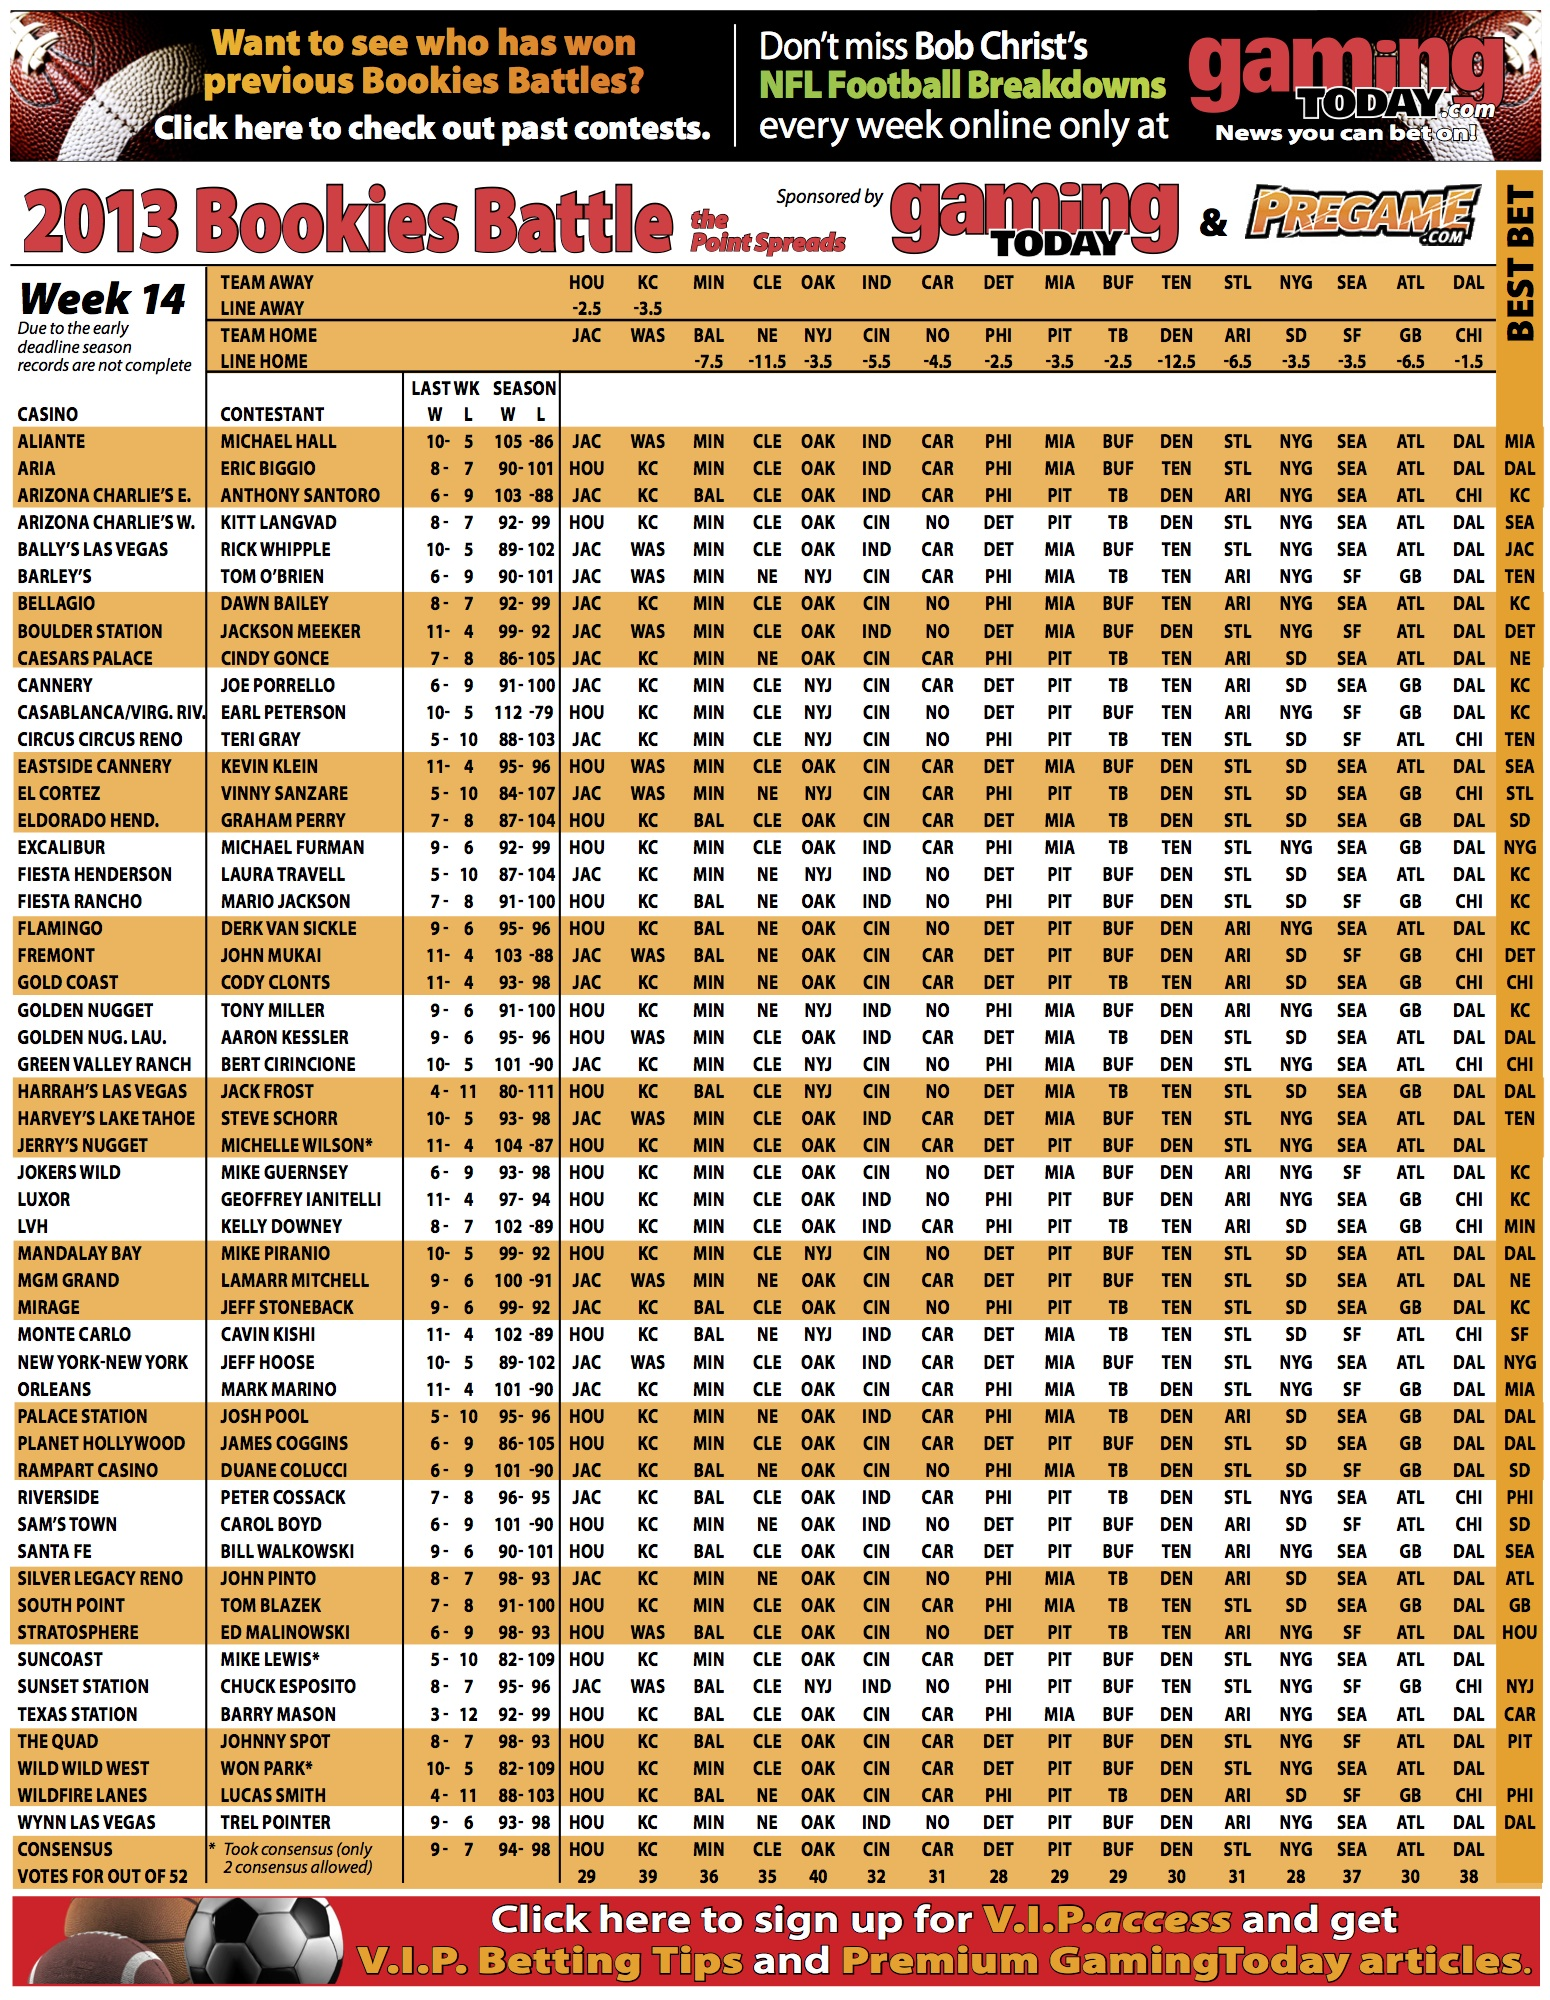 Bookie Battle: 53 Vegas bookies pick every NFL Game! - NFL - Forums